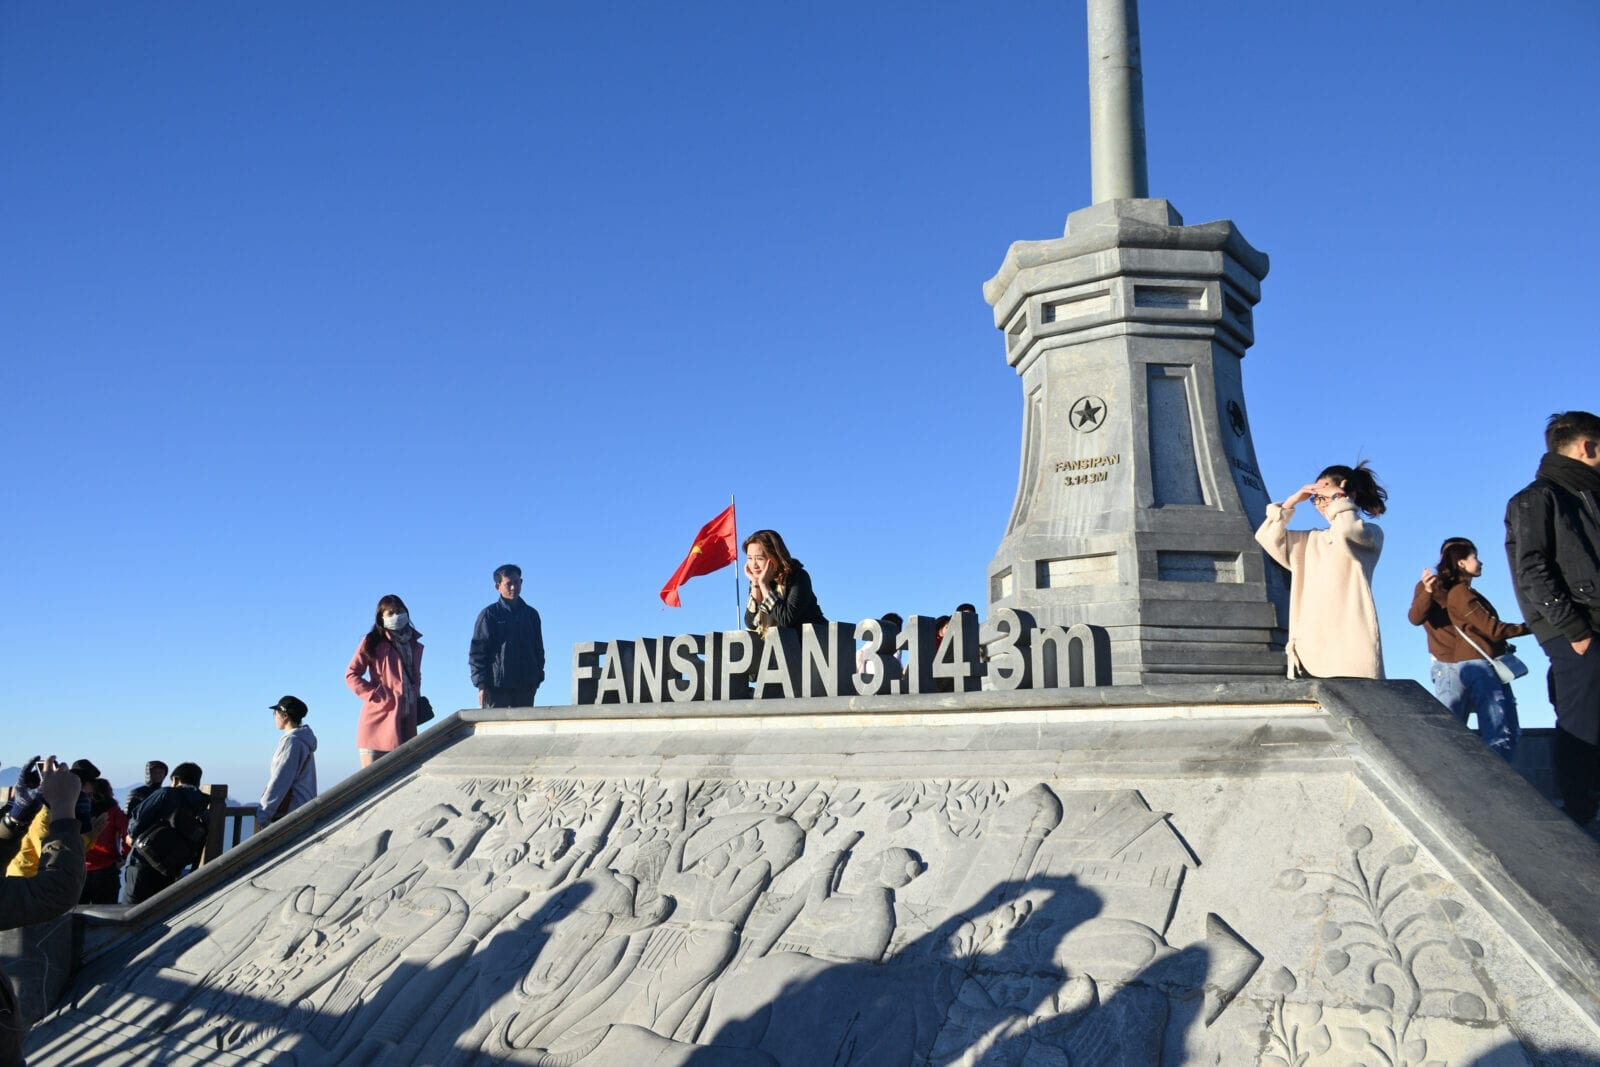 Image of the Fansipan sign at the peak of the mountain in Vietnam